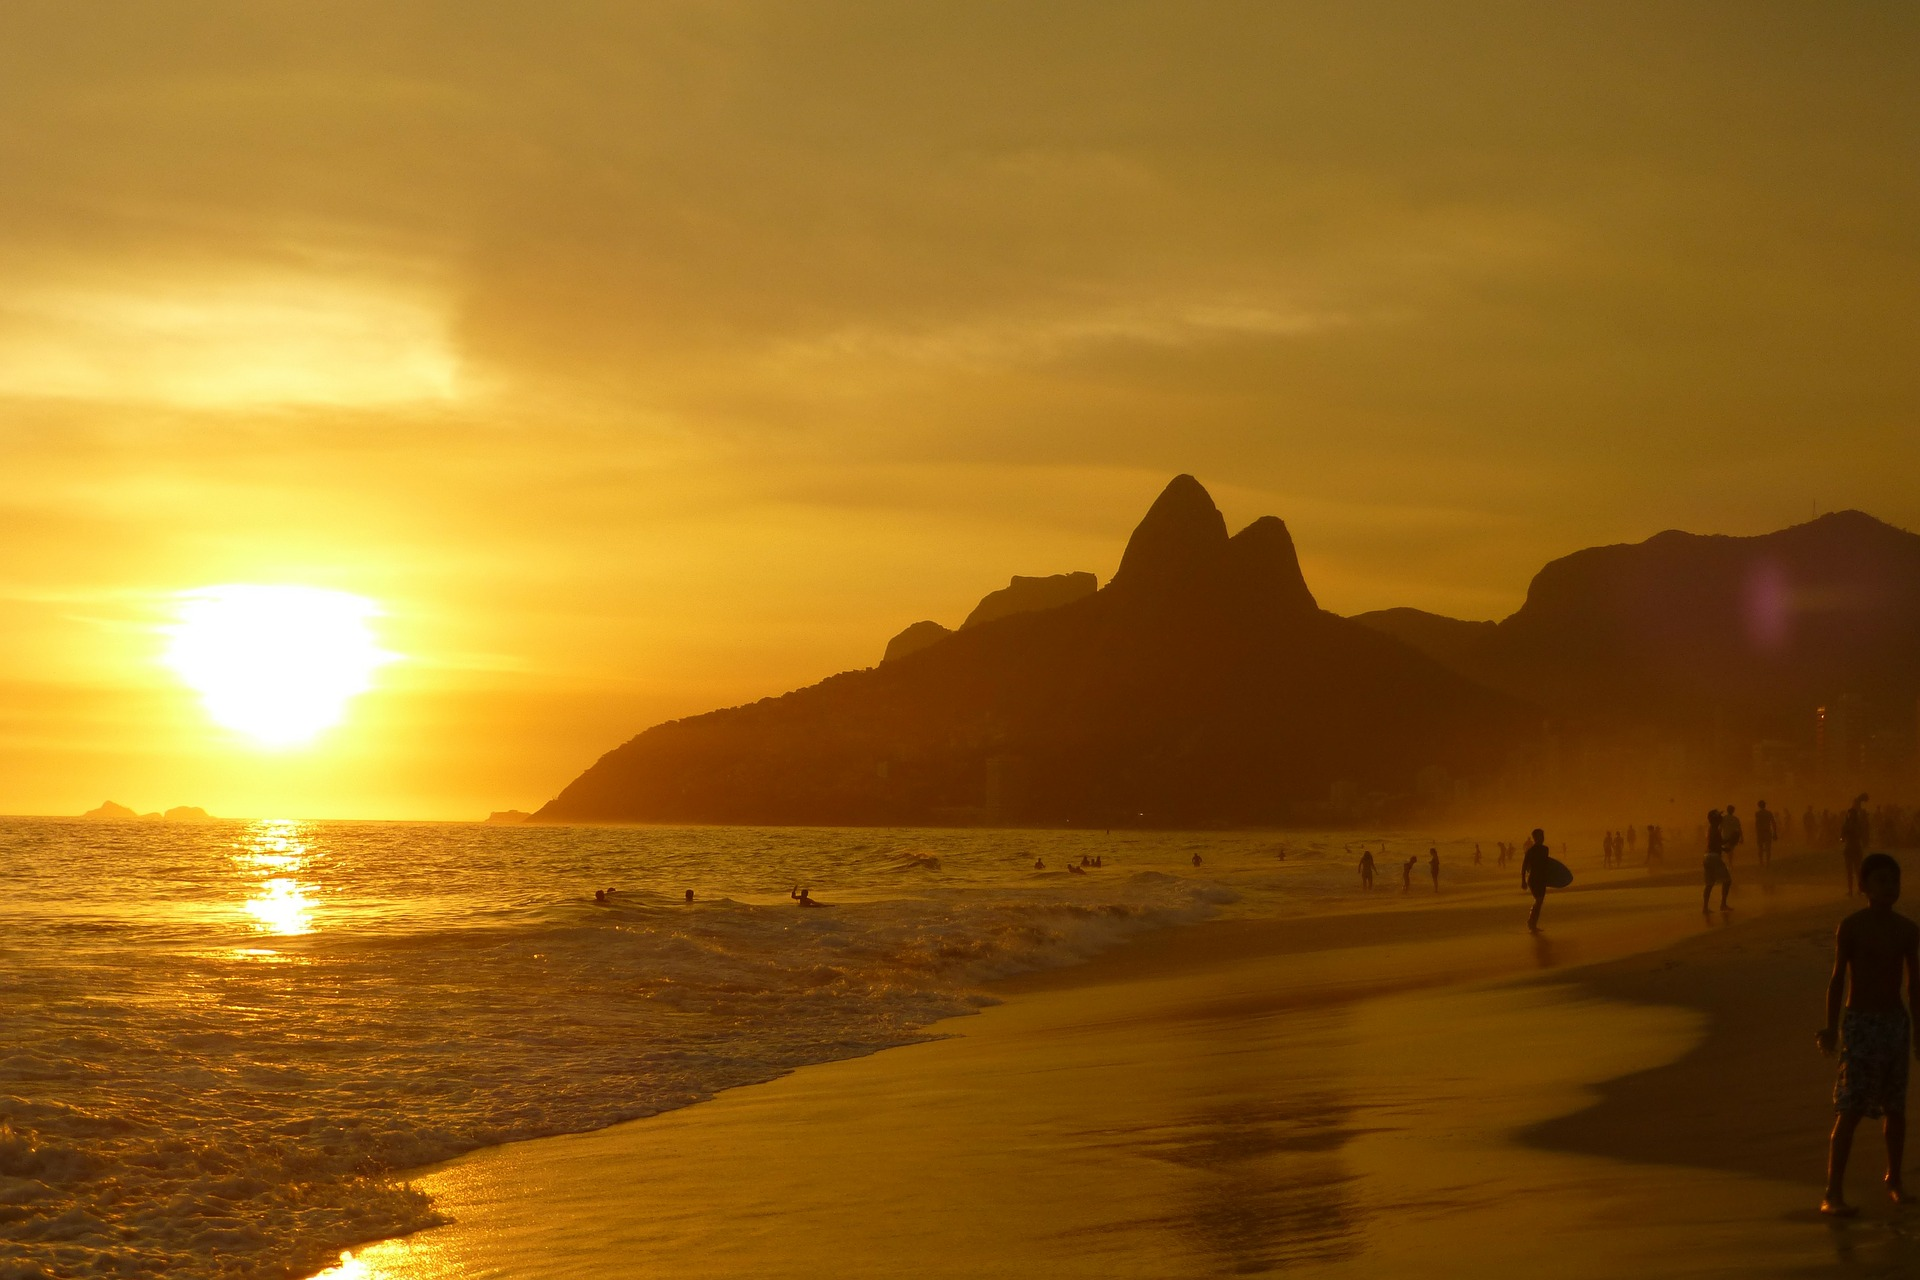 ipanema-beach-99388_1920